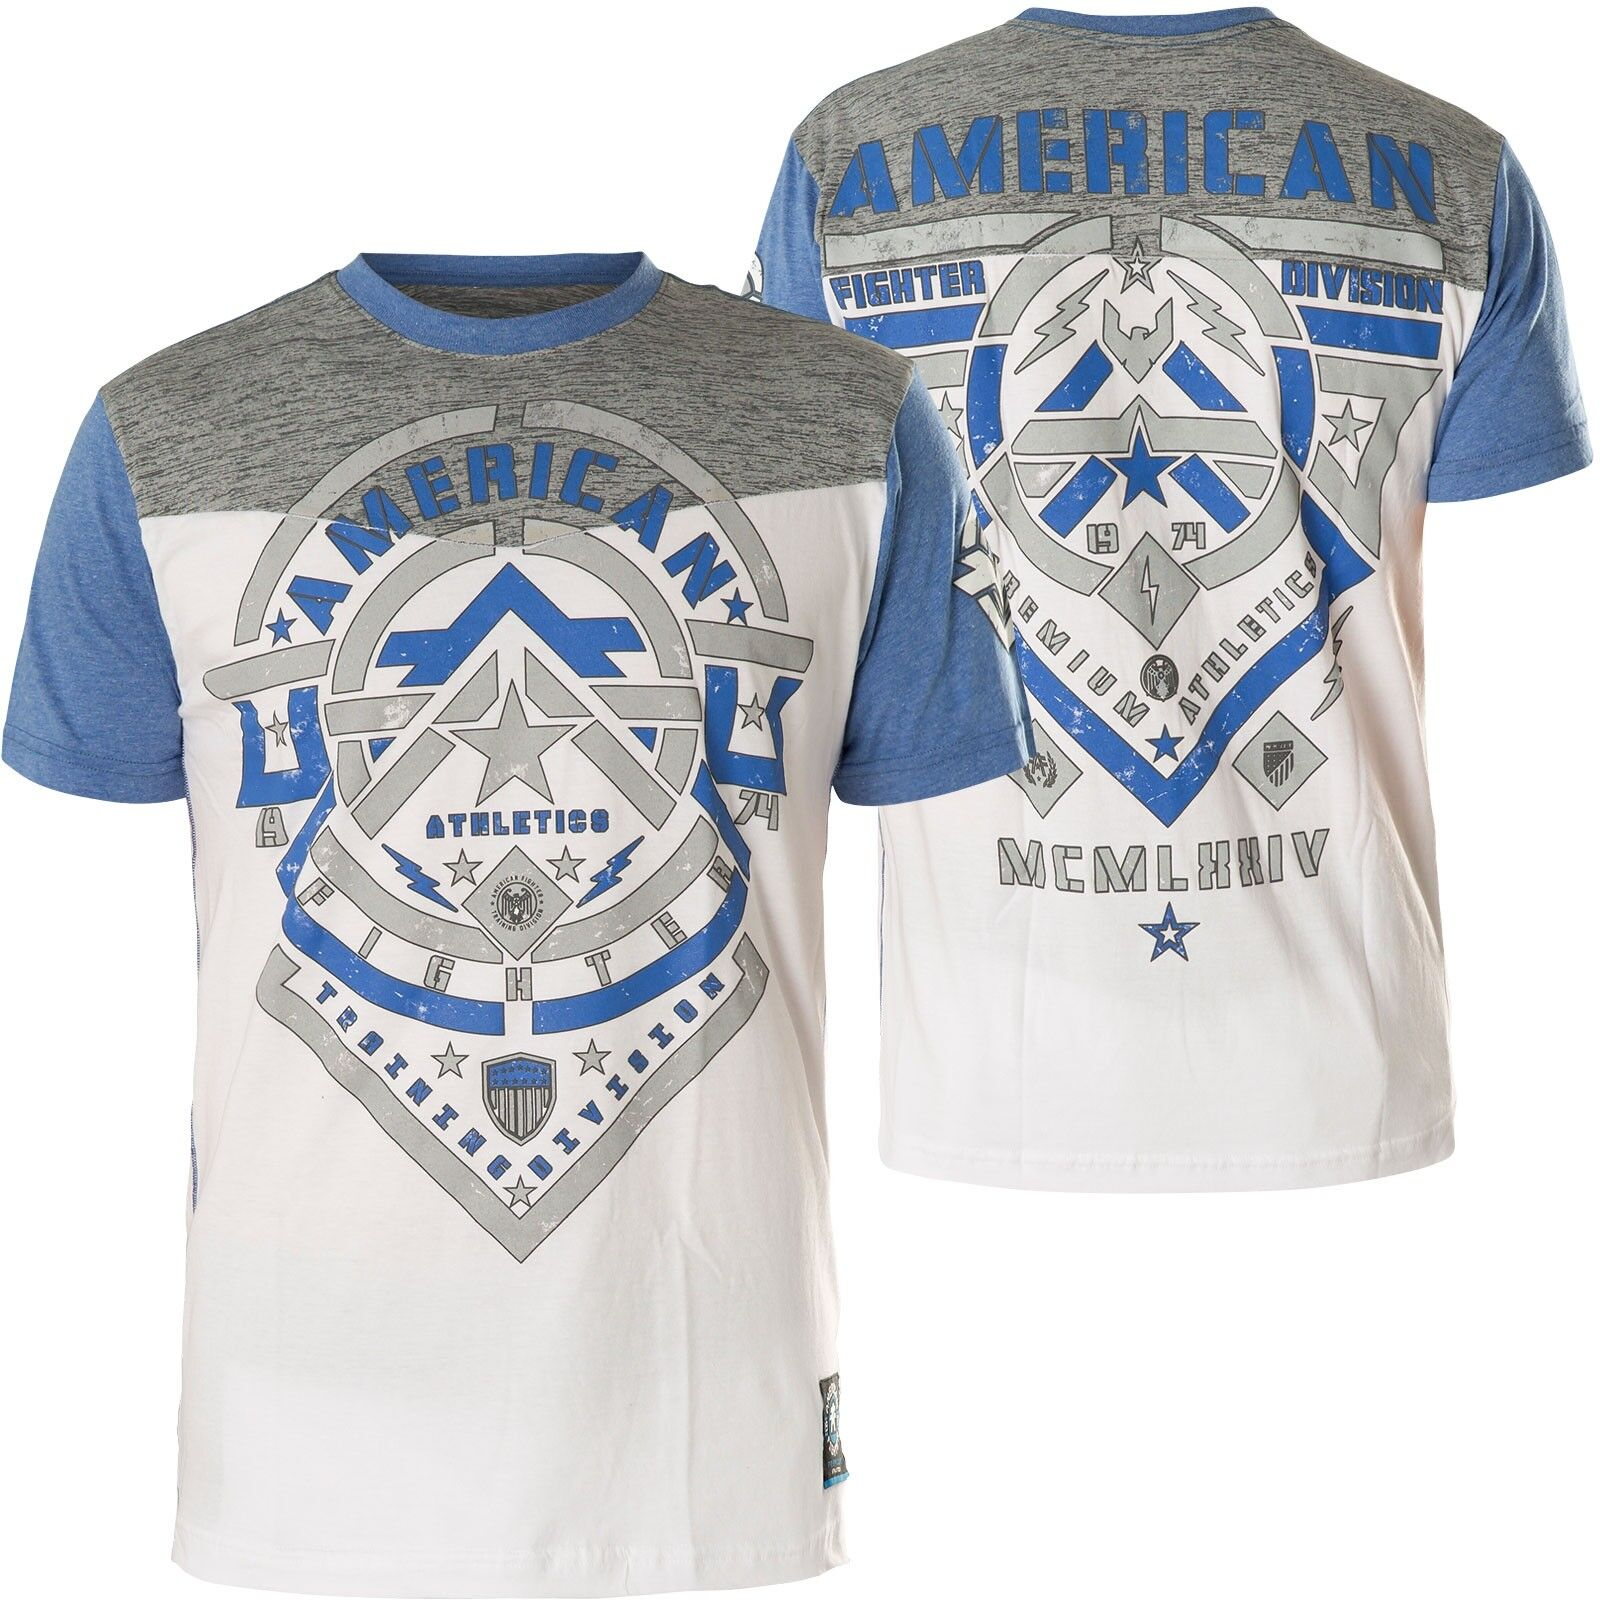 American Fighter Affliction T-shirt Darnell Bianco Grigio Blu T-shirts